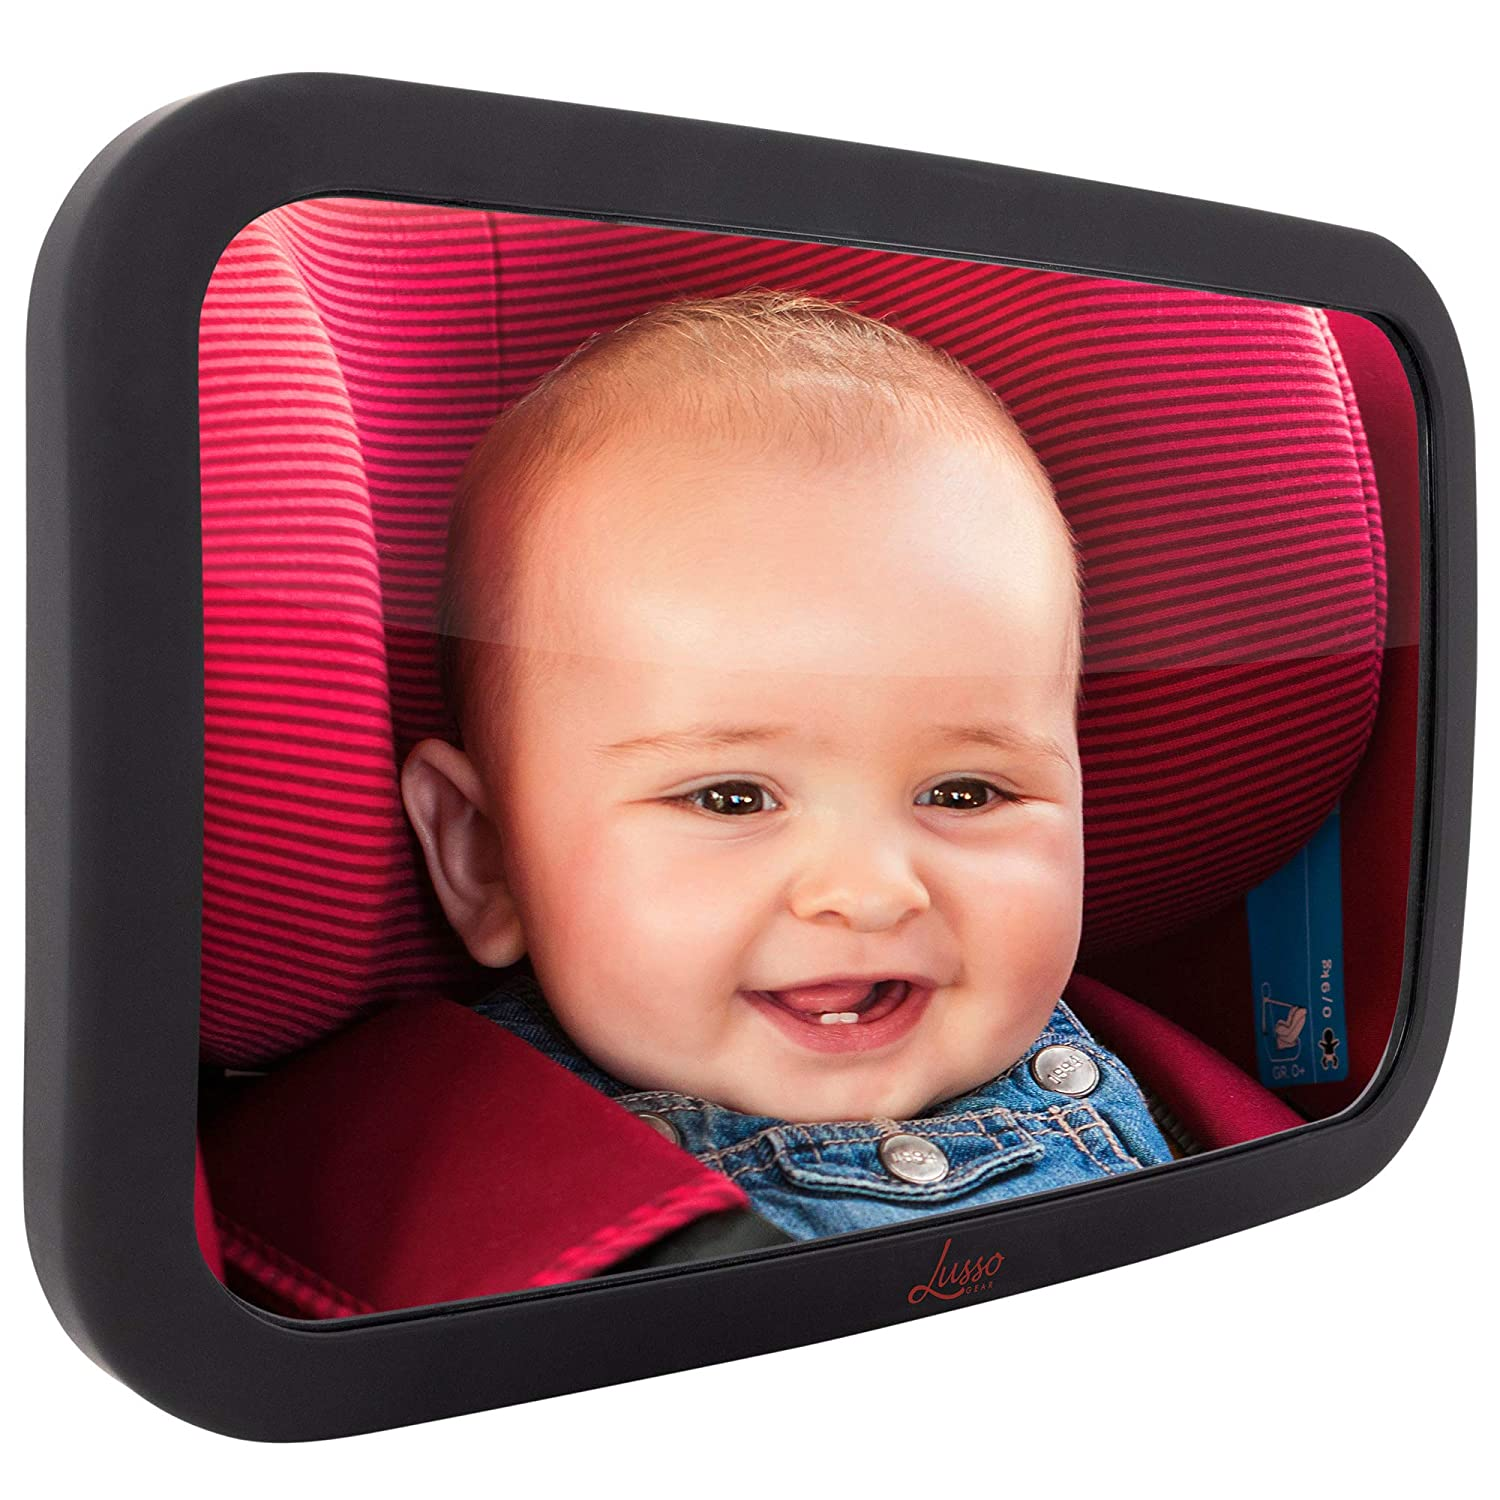 Top 9 Best Baby Car Mirrors (2020 Reviews & Buying Guide) 2